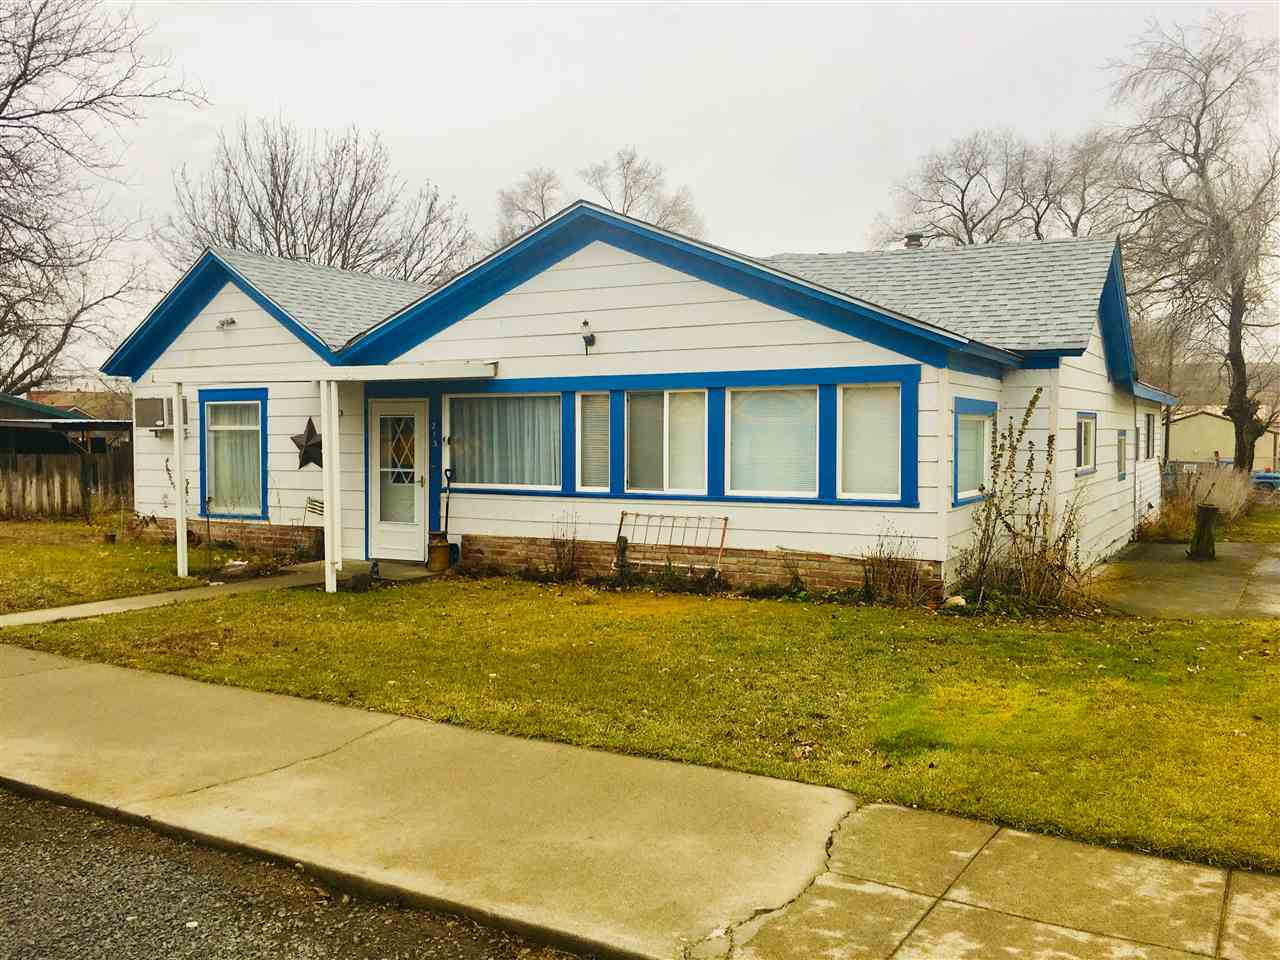 Single Family Home for Sale at 213 W 3rd Street 213 W 3rd Street Lind, Washington 99341 United States